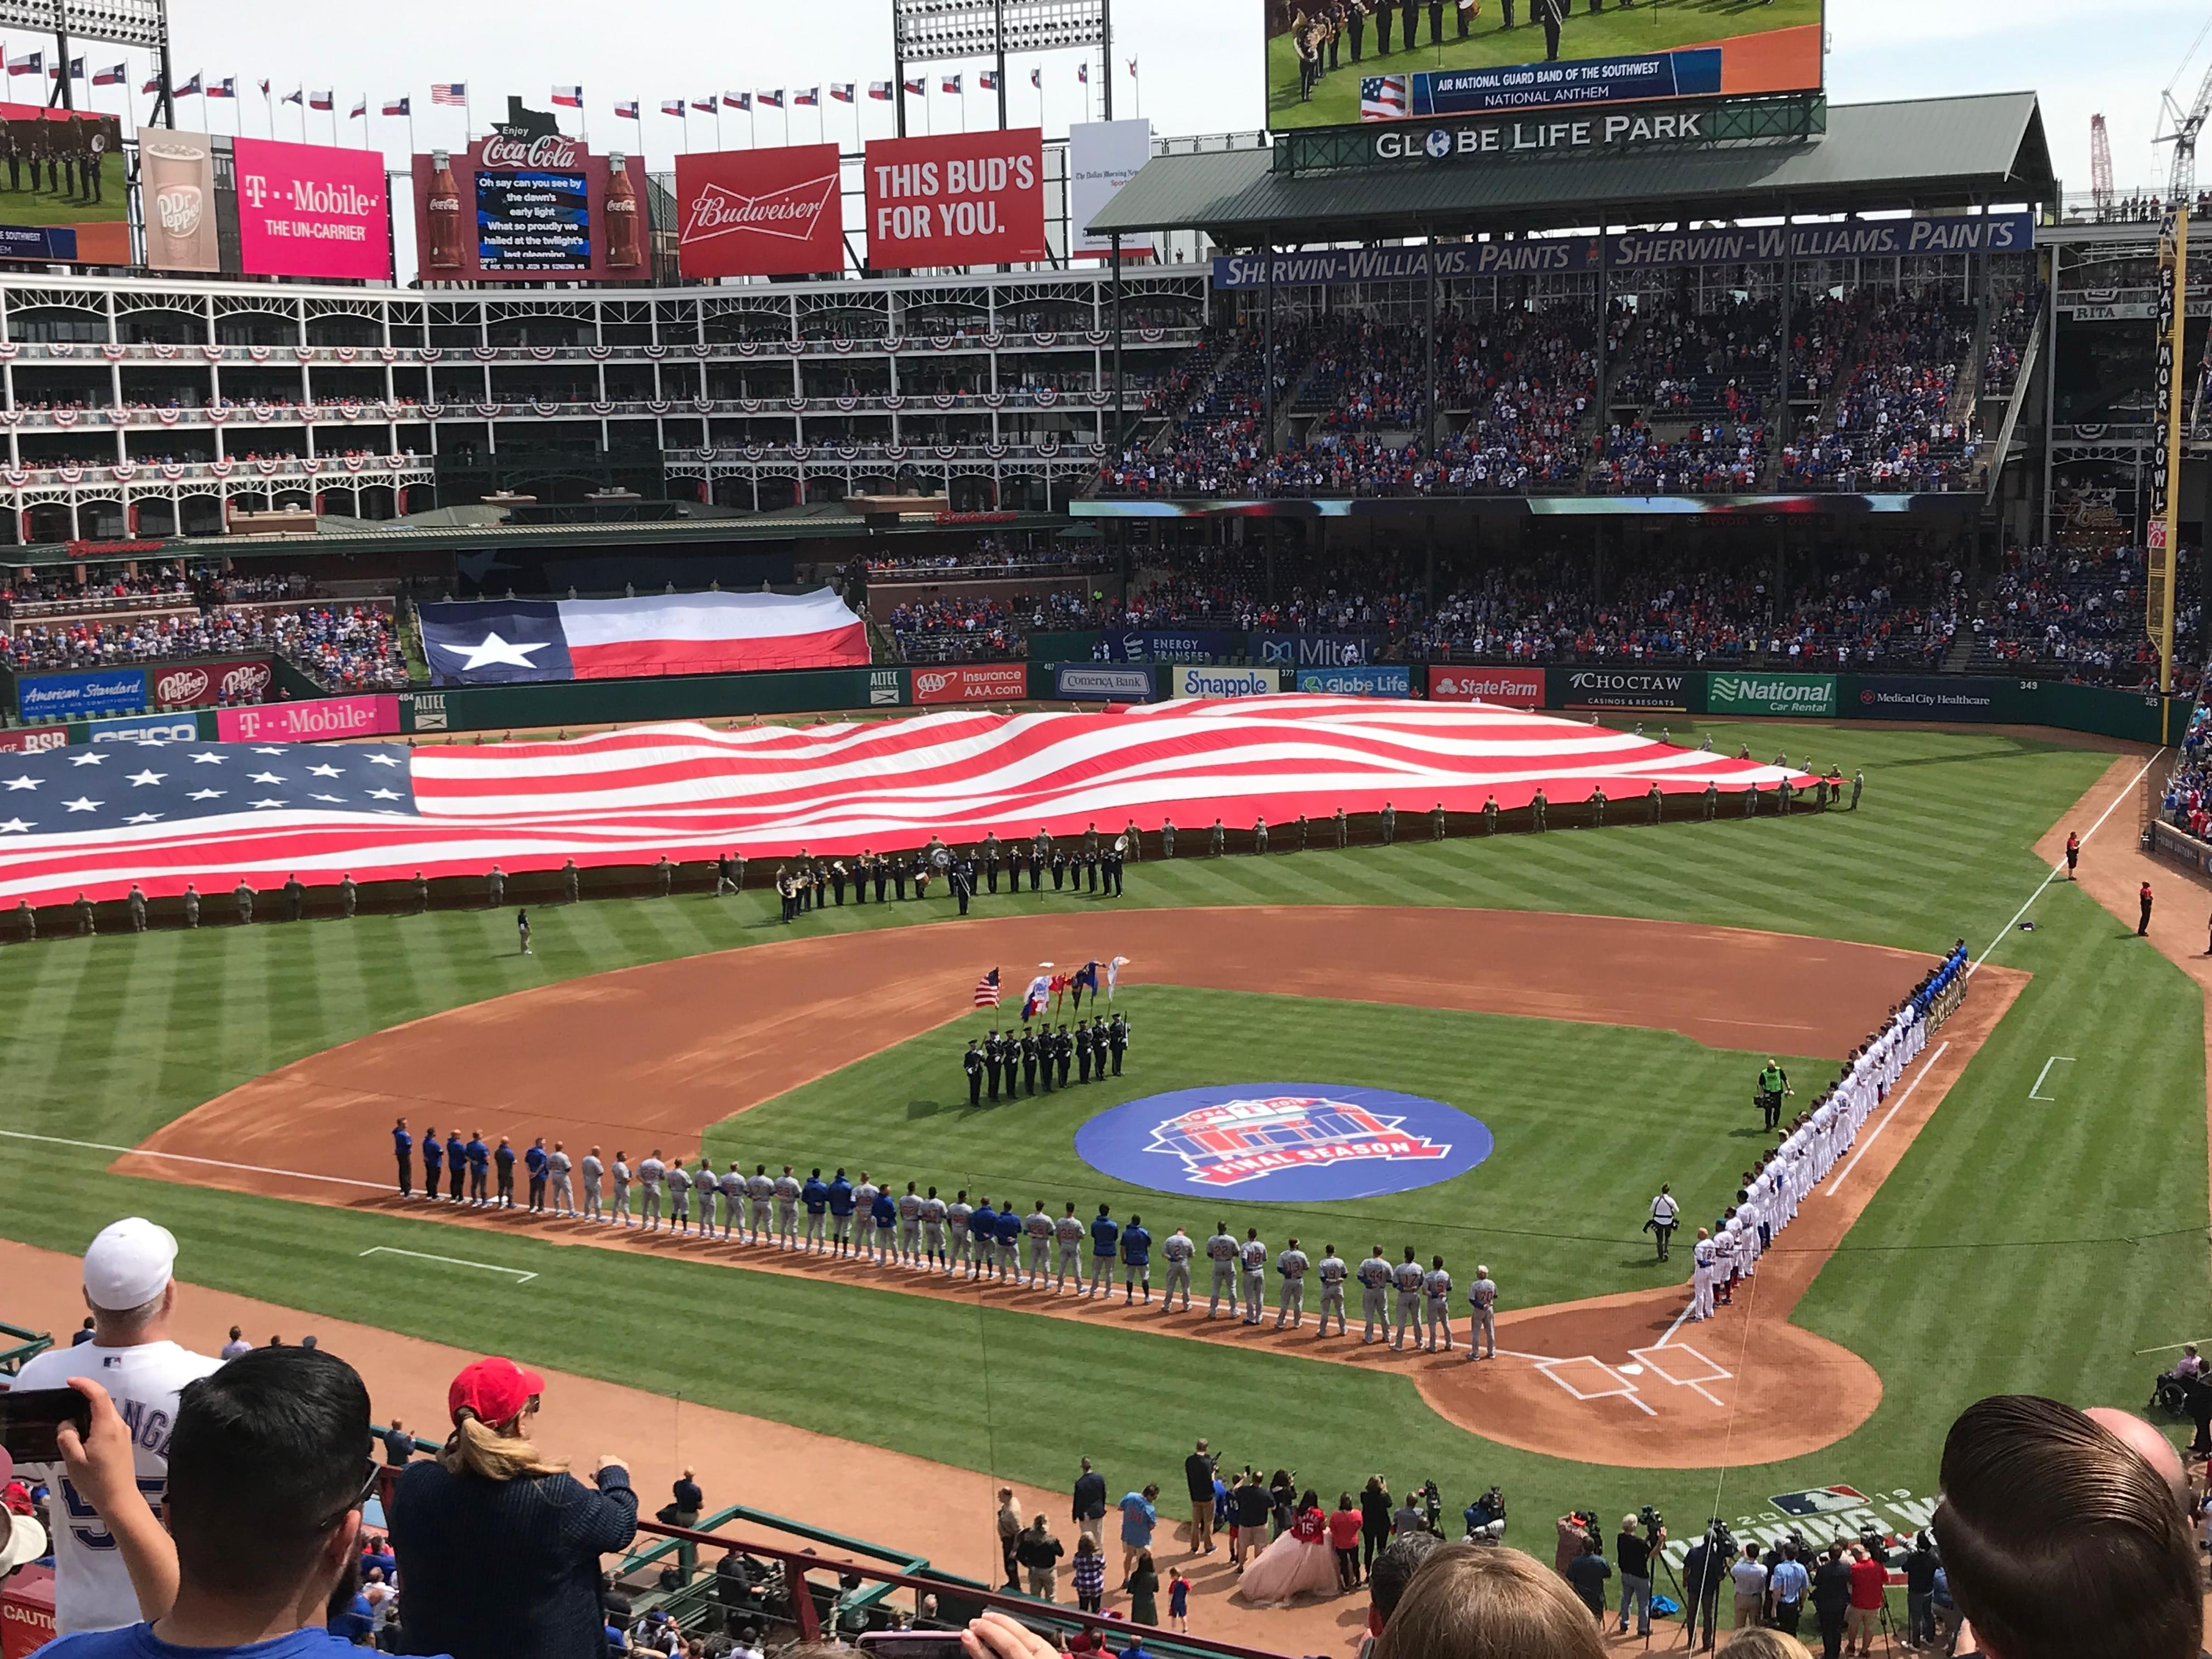 08-17-19 Rangers Wrap Up- Rangers gonna Rangers and Award season is coming!